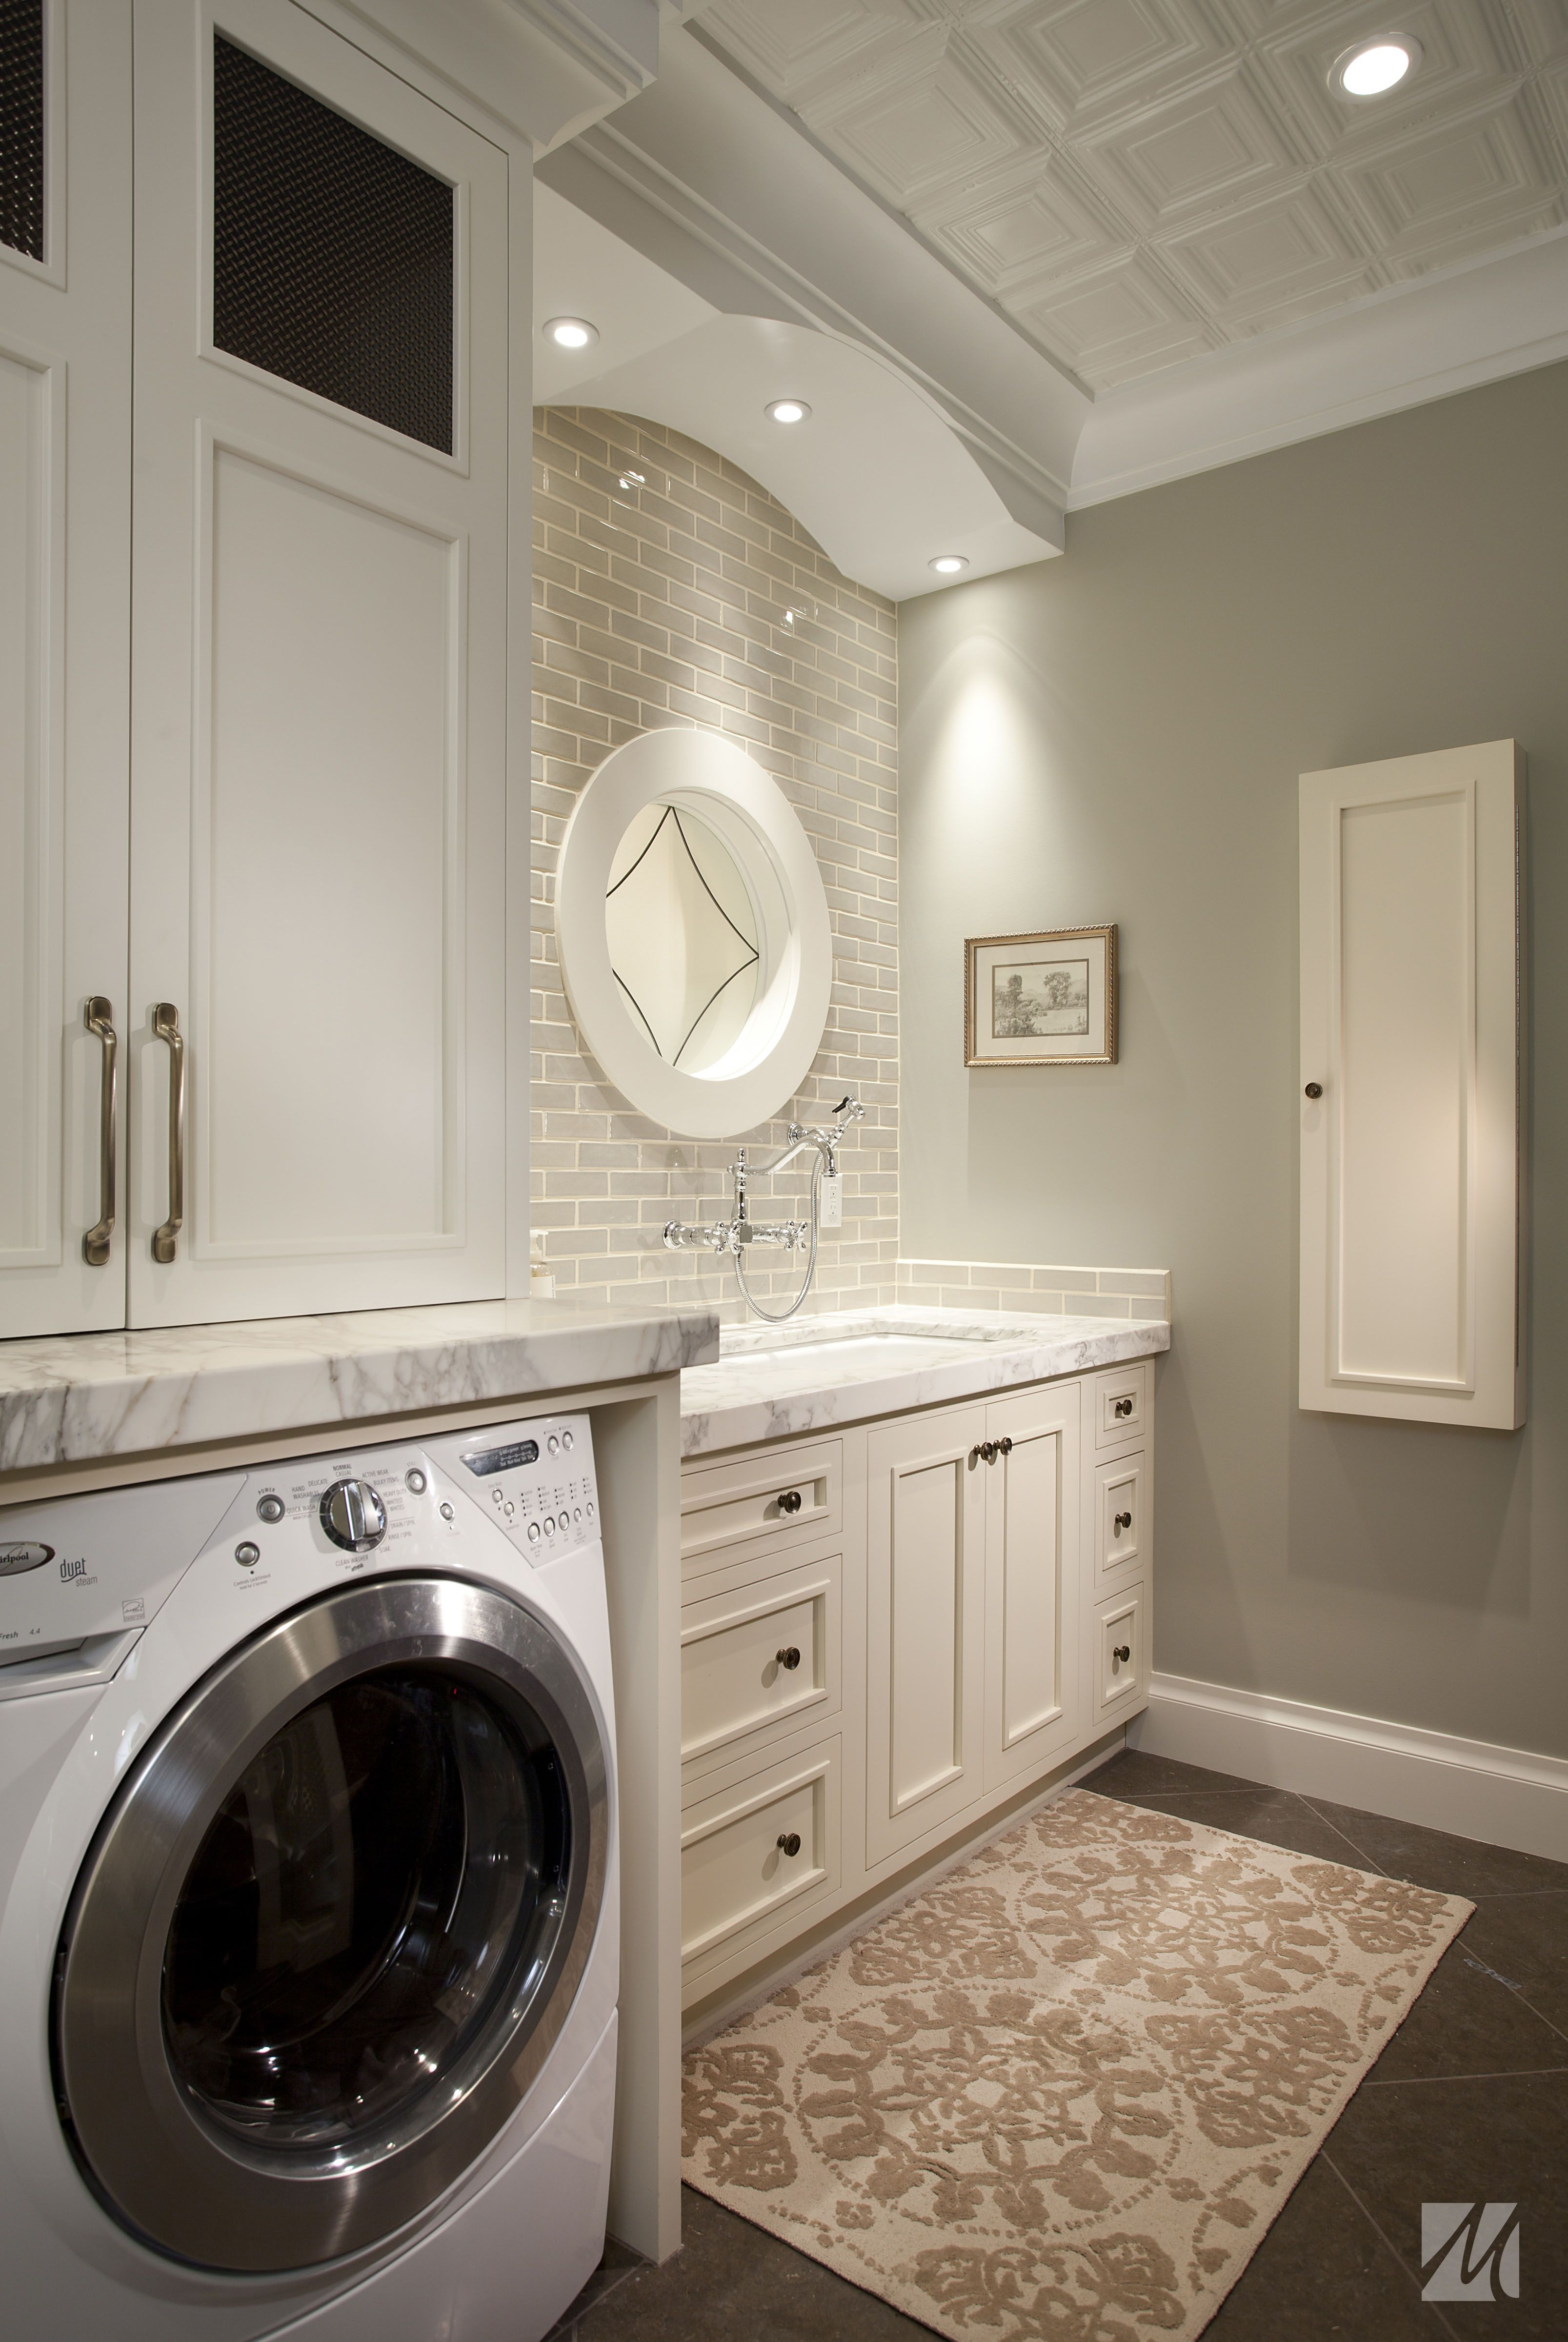 Laundry Room Sinks Cabinet Is pleted With Round Mirror And Brown